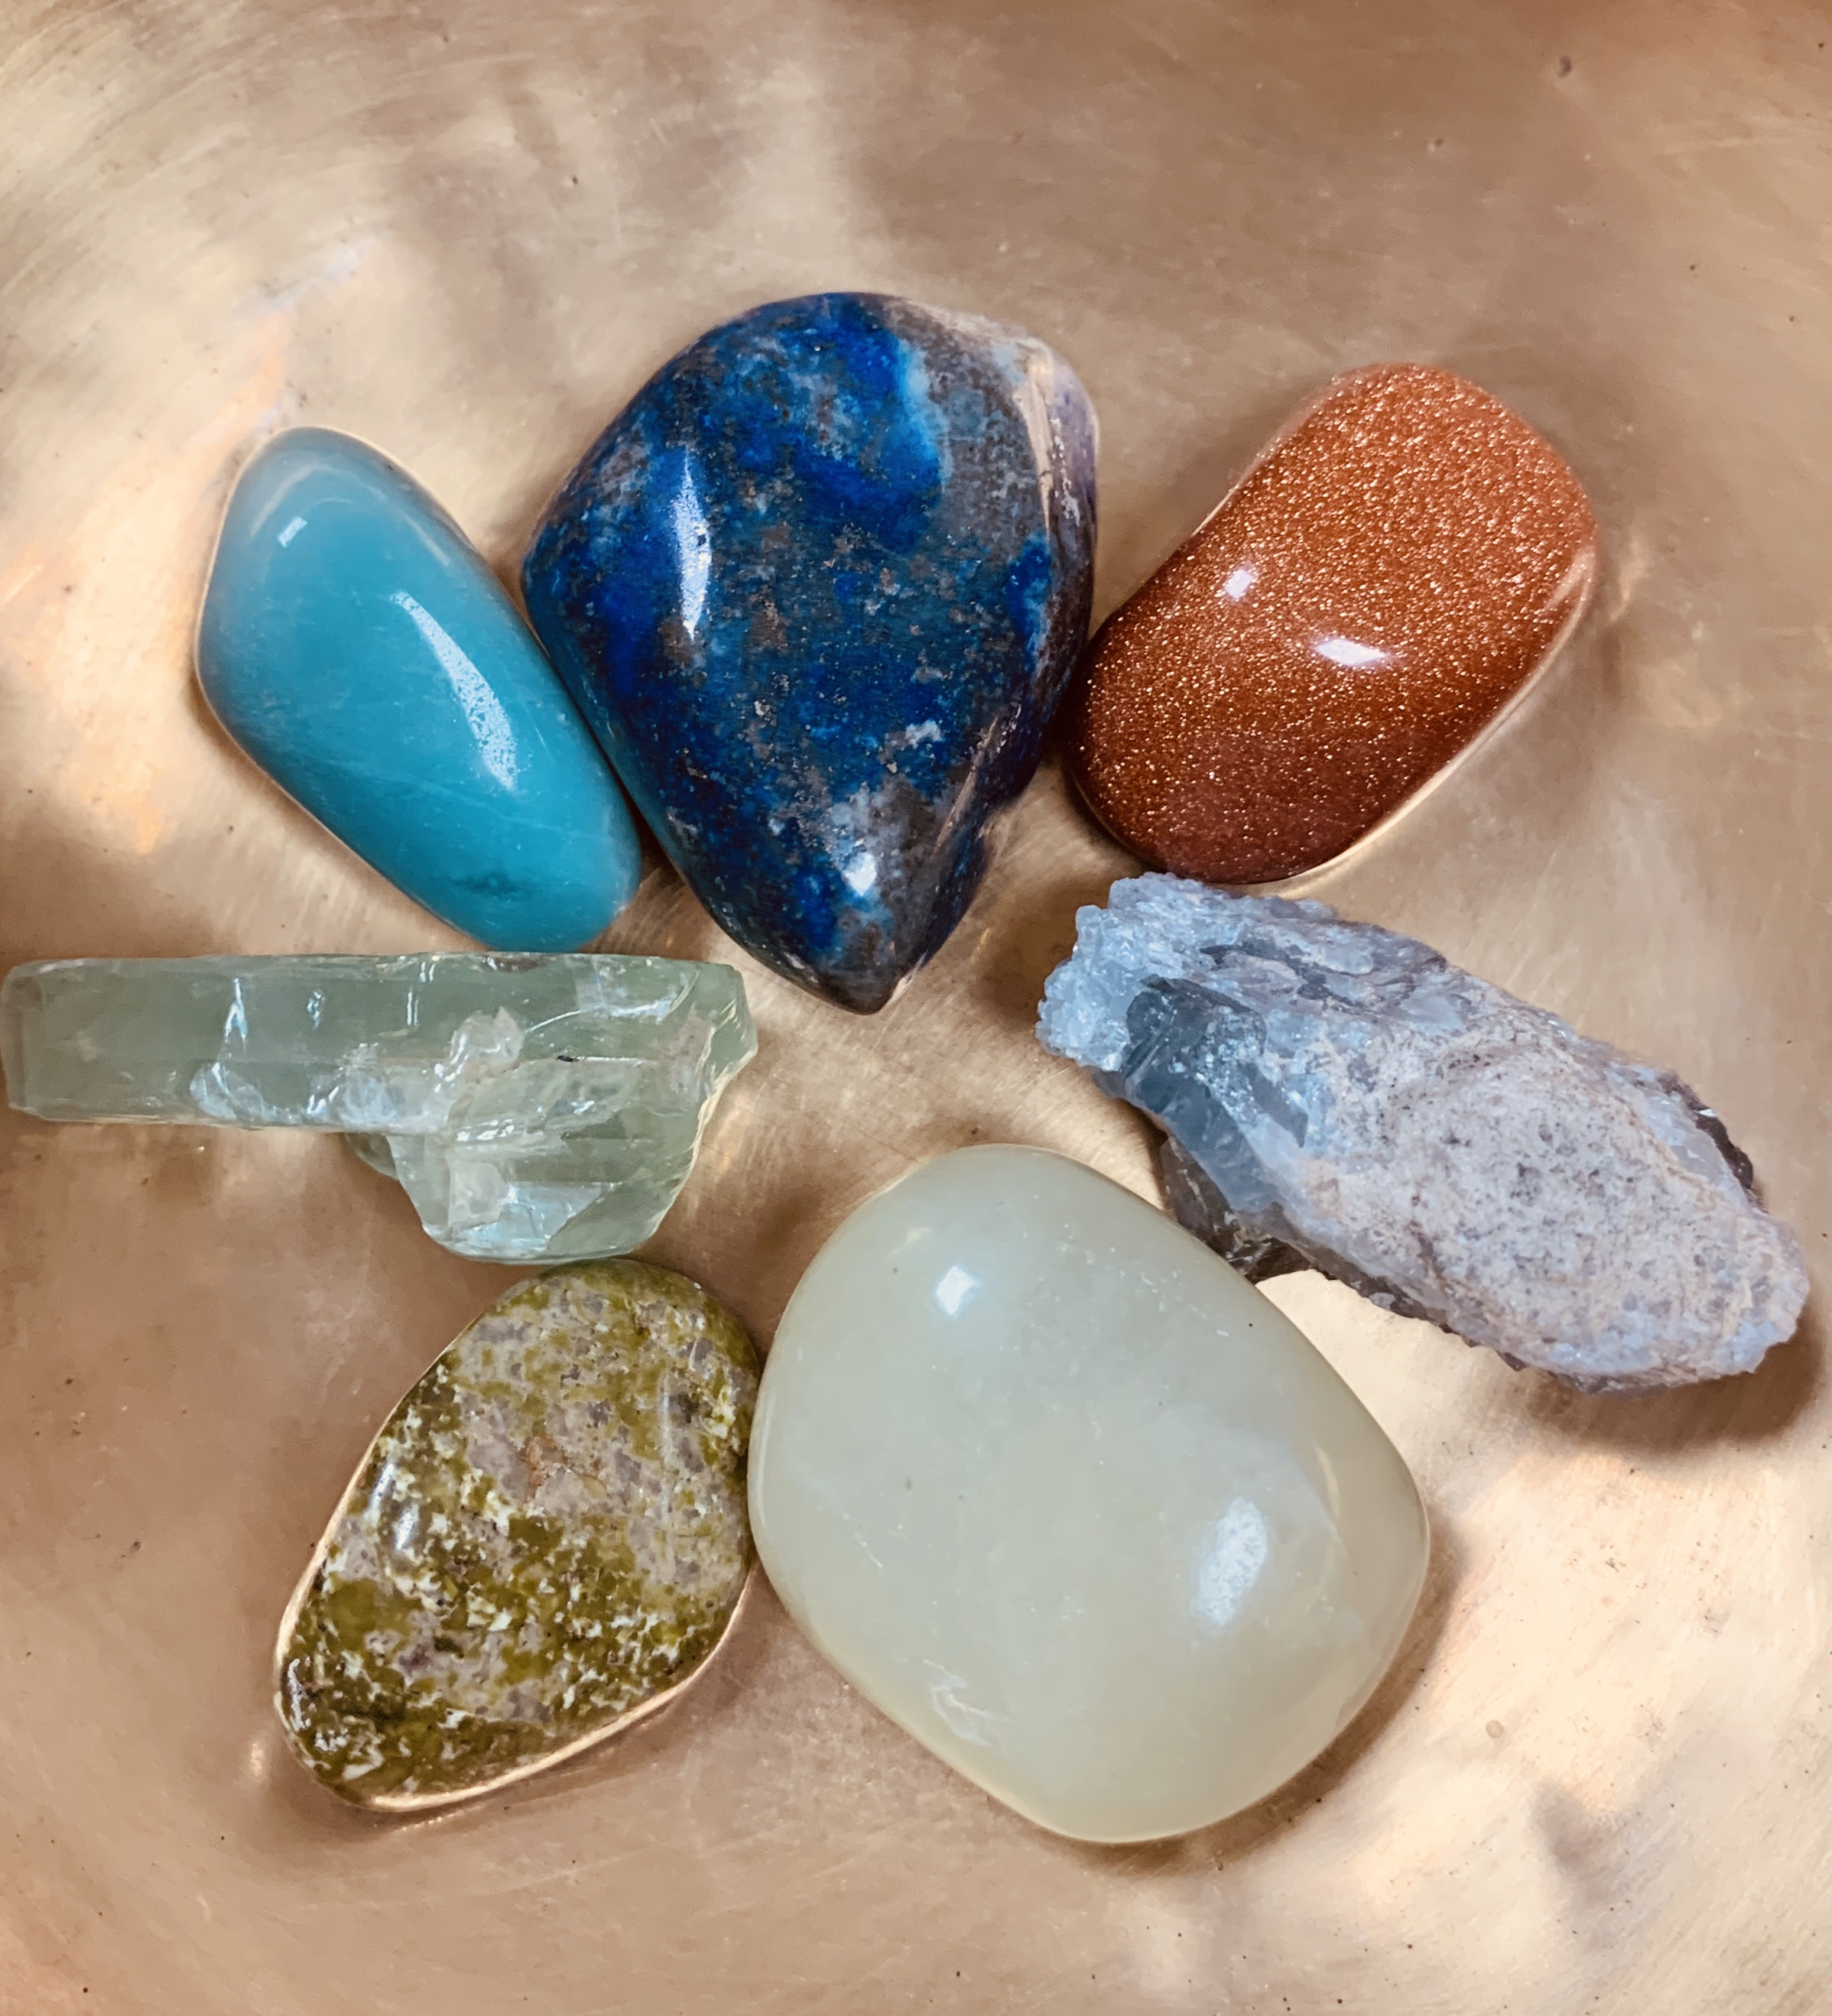 Stones and Bowl.jpg